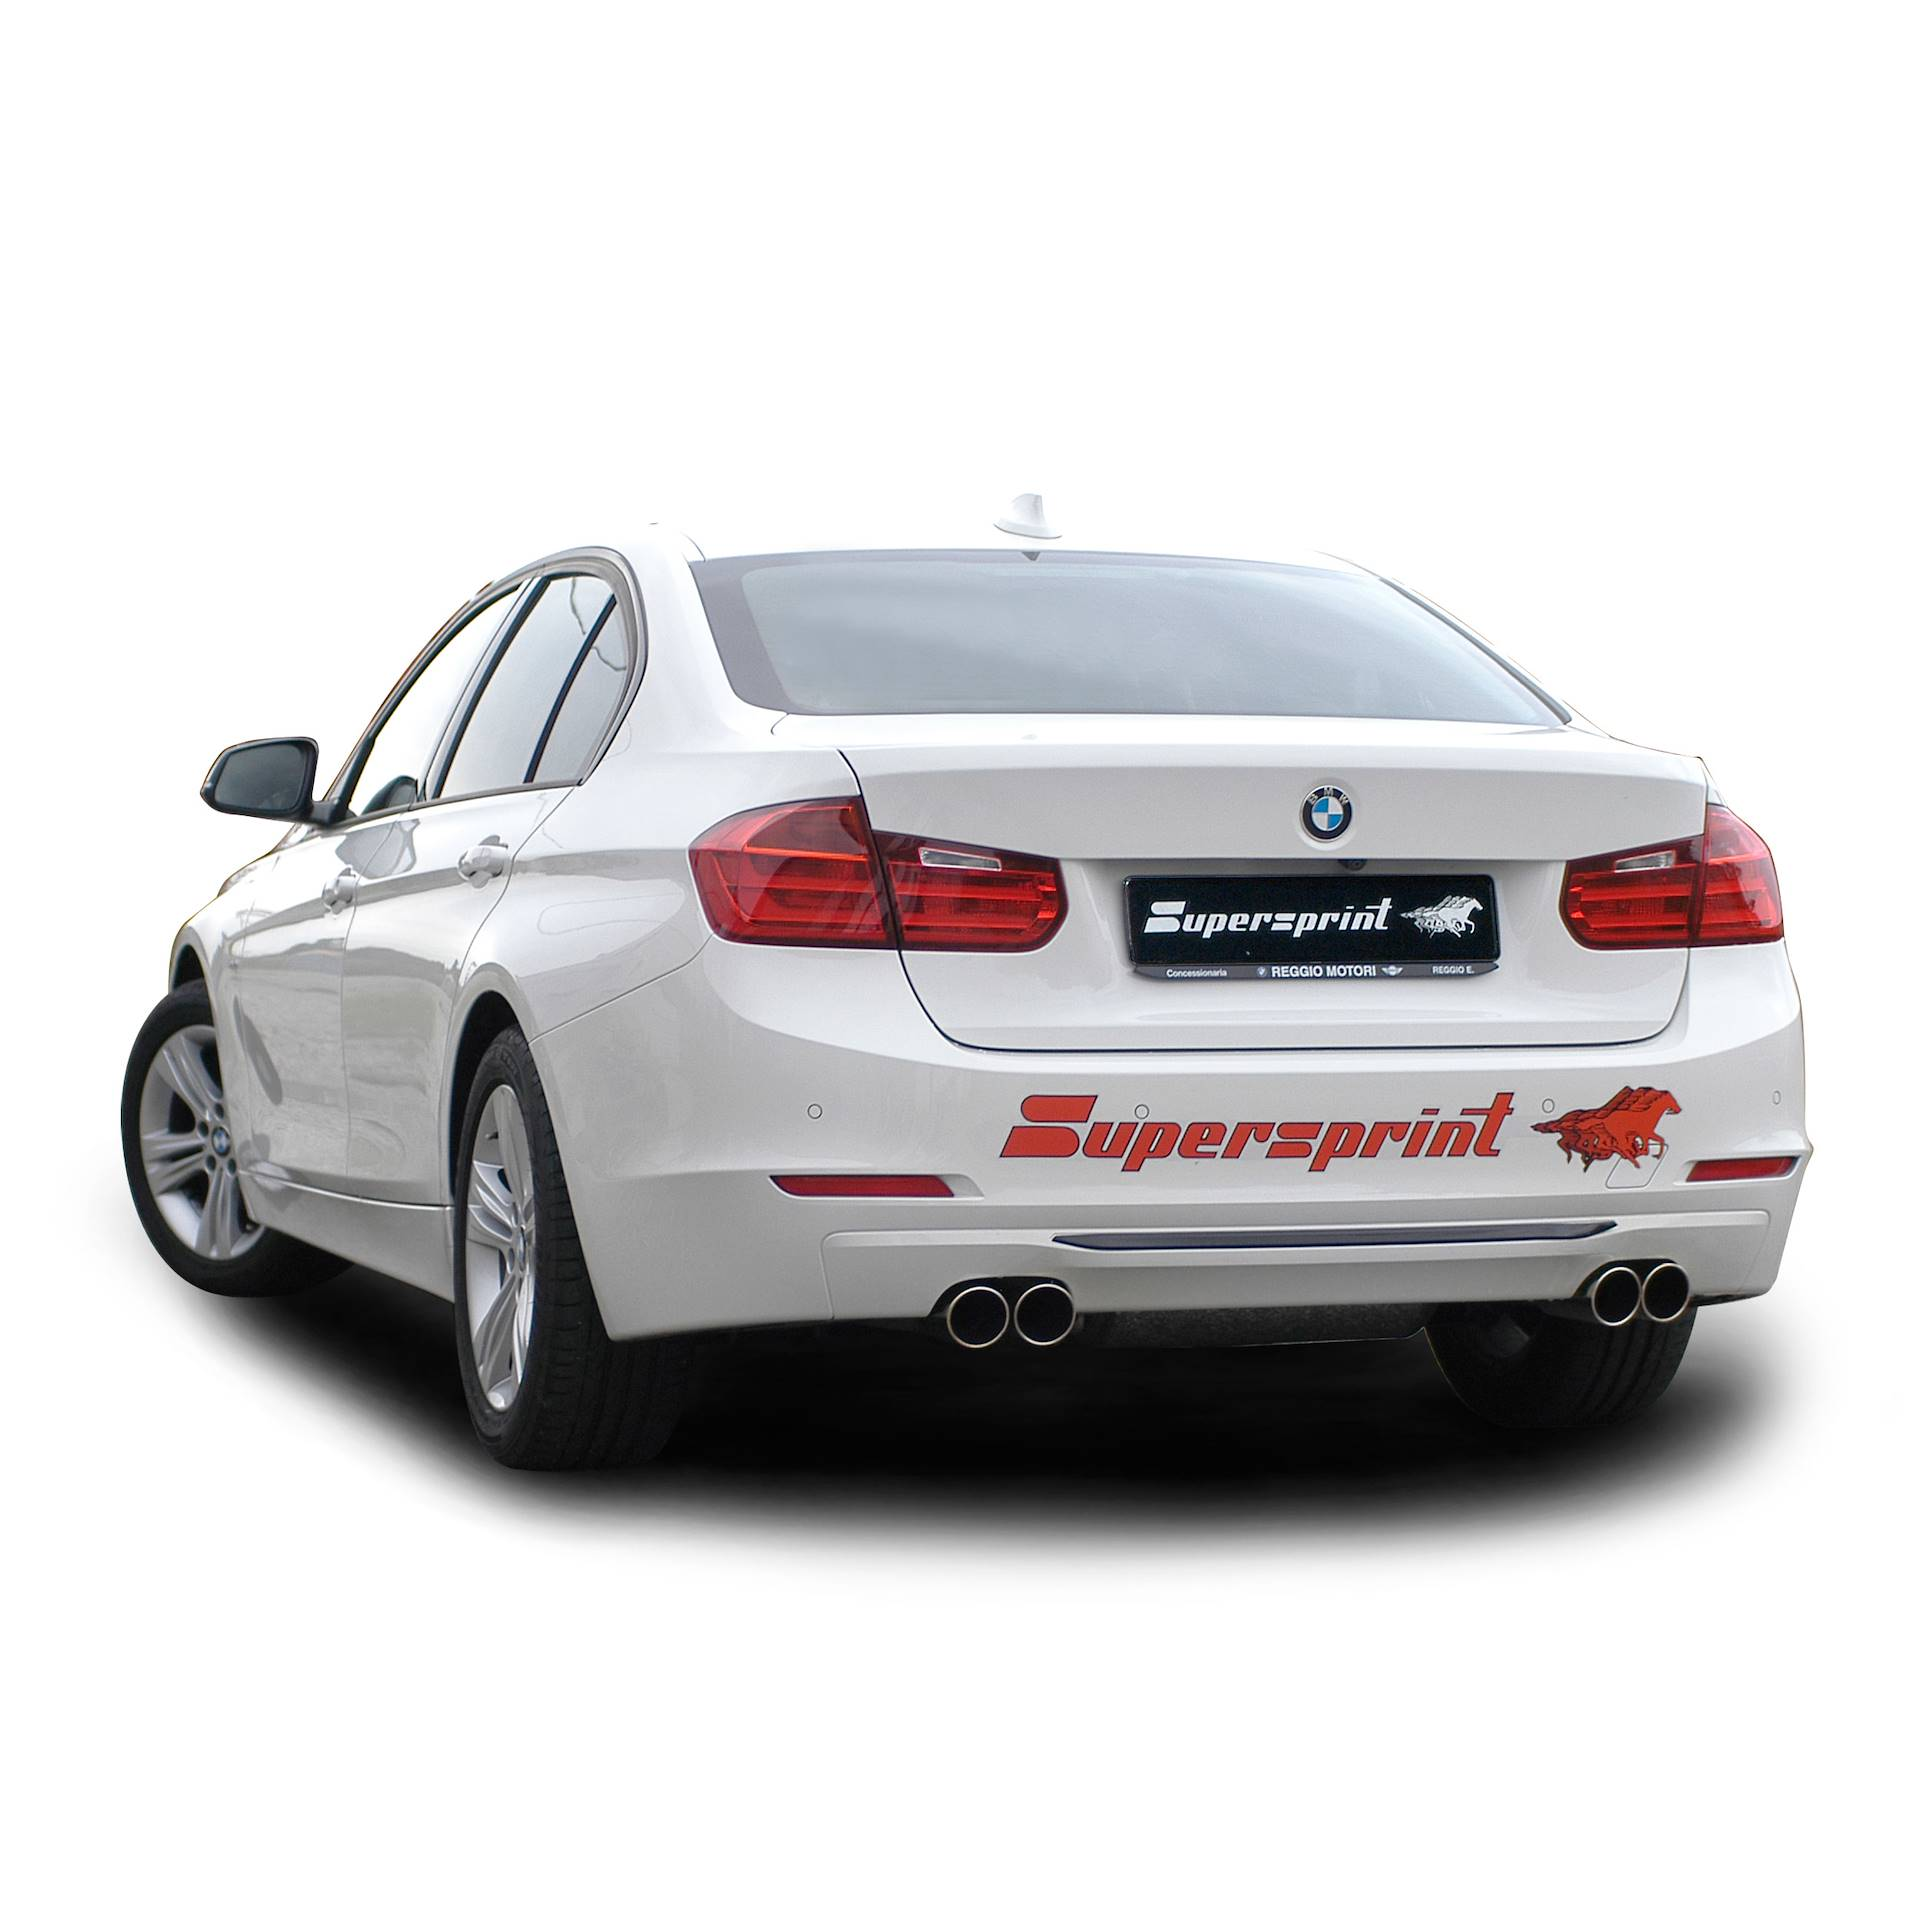 BMW - BMW F30 (Sedan) 328i xDrive 2.0T (N26 245Hp) 2013 ->